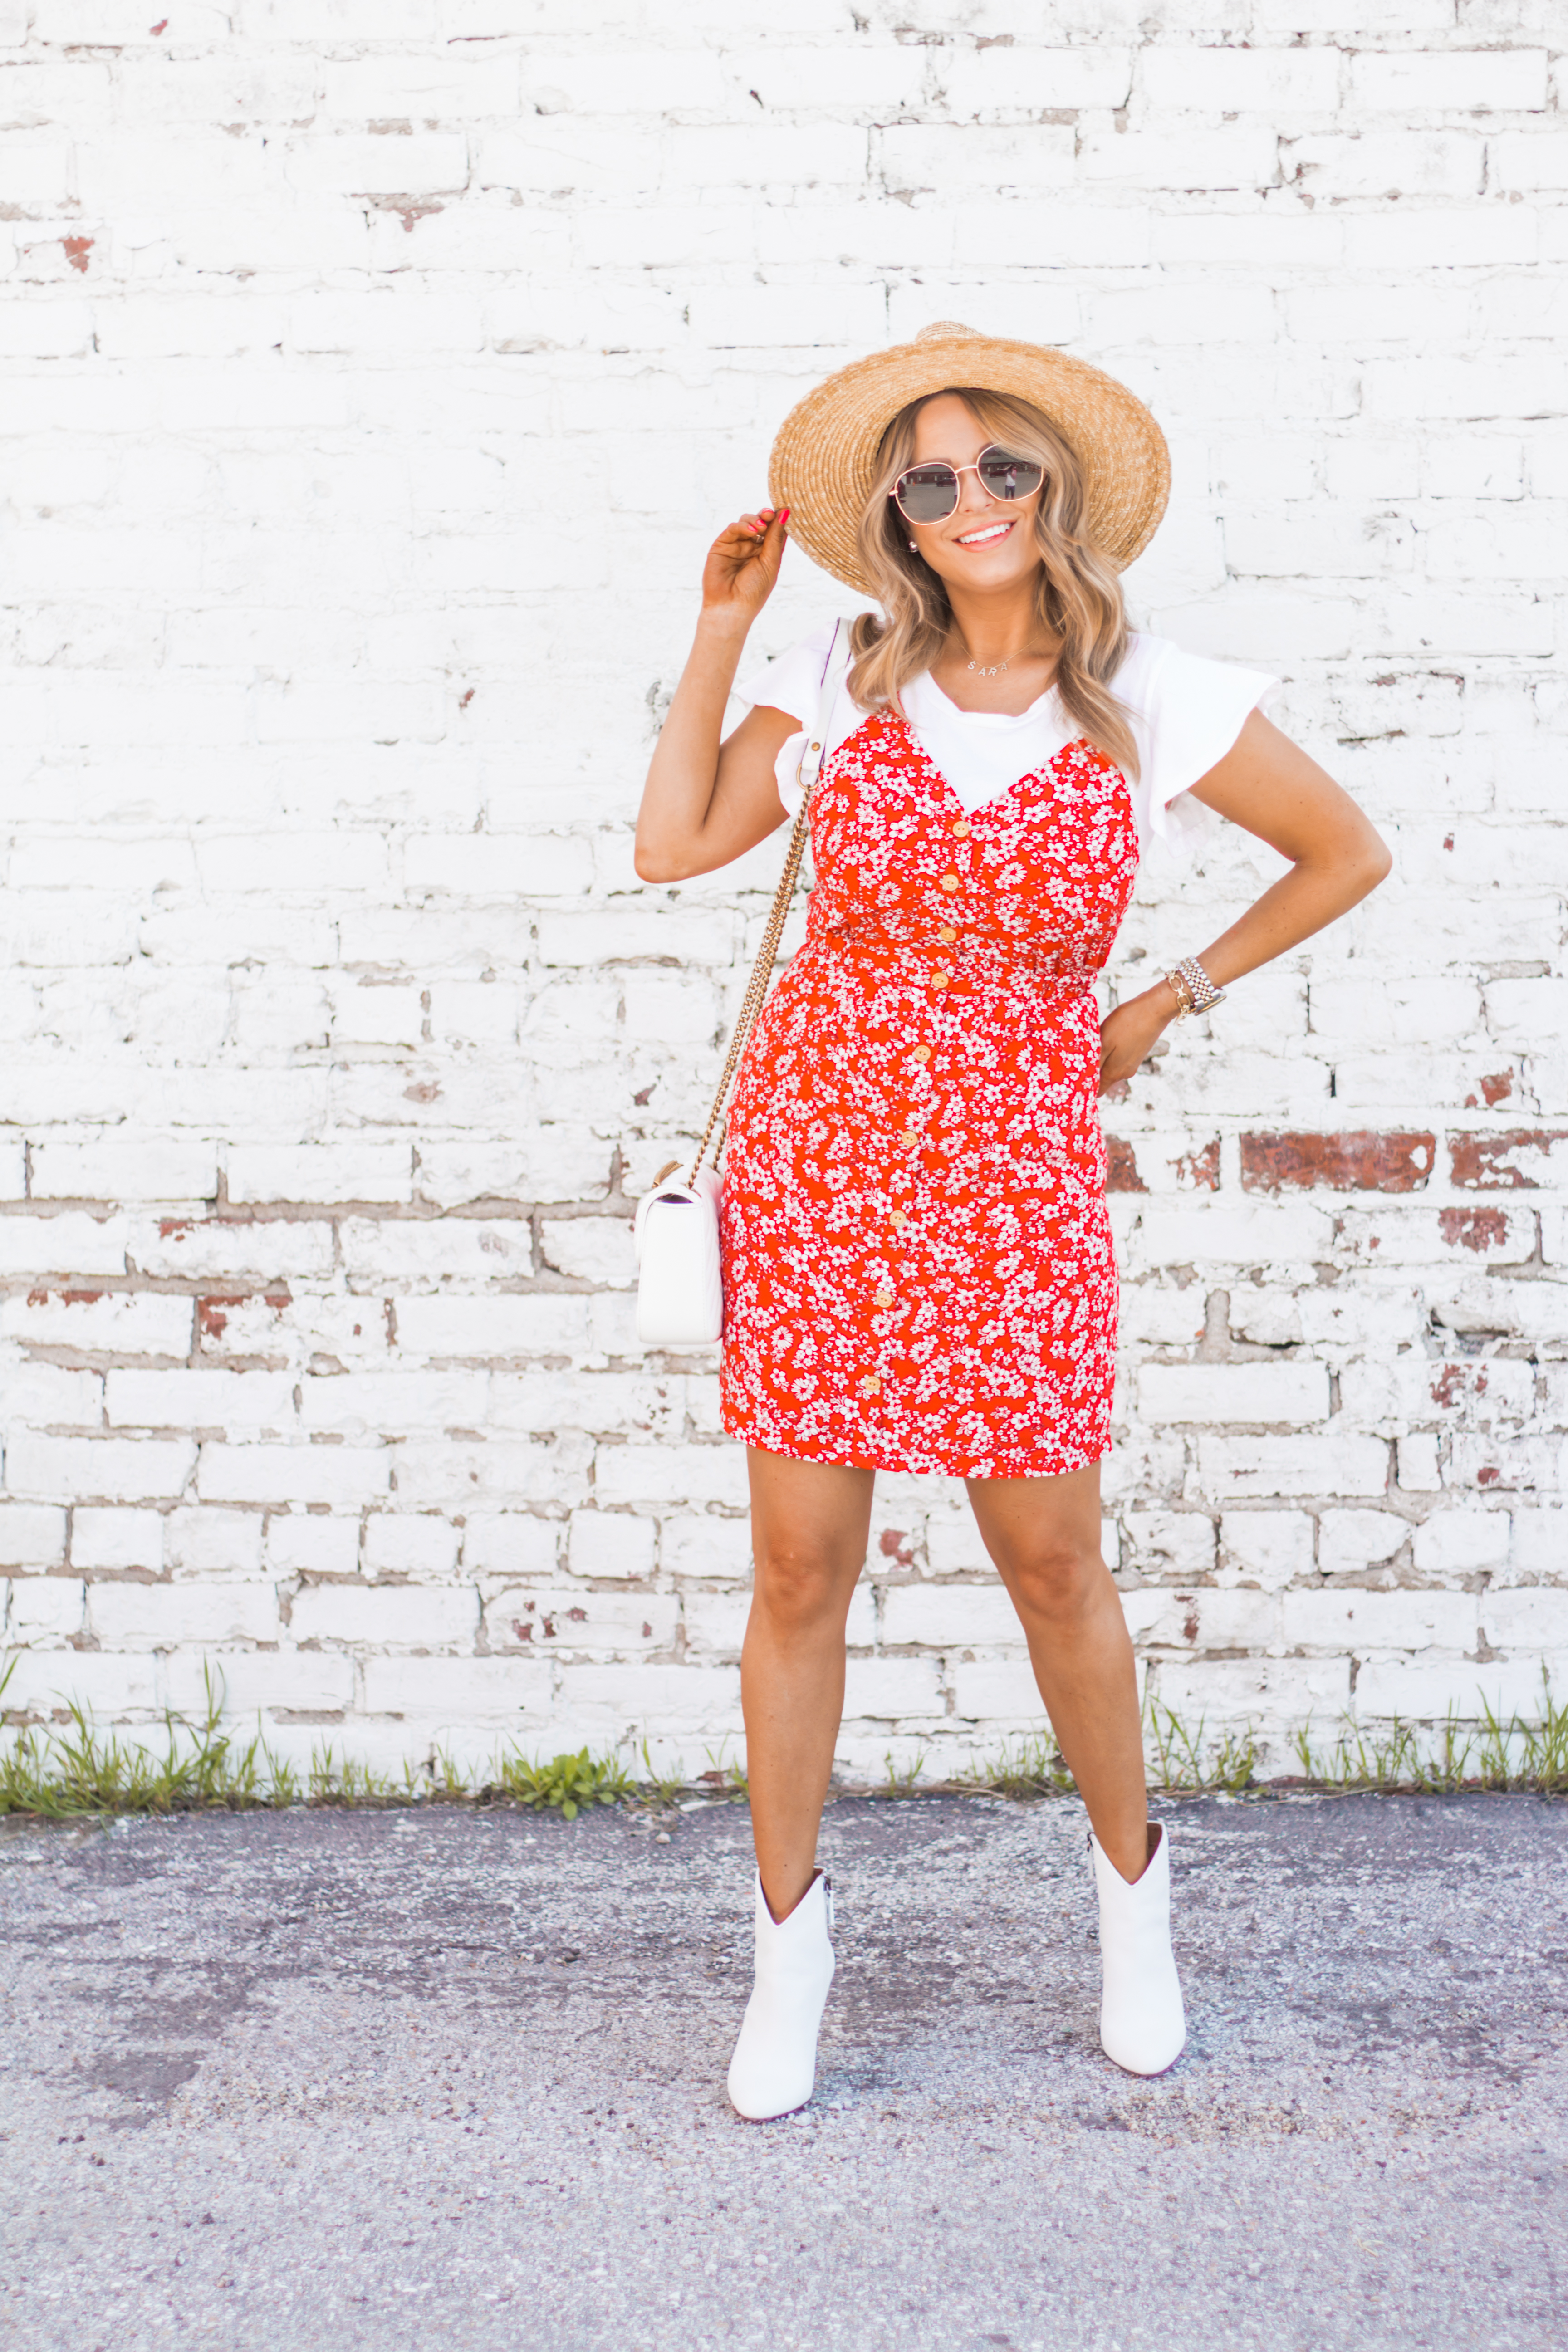 red-sundress-spring-summer-dress-floral dress-women's fashion- spring fashion-summer fashion-brixton hat-white booties-Omaha blogger-sabby style-7